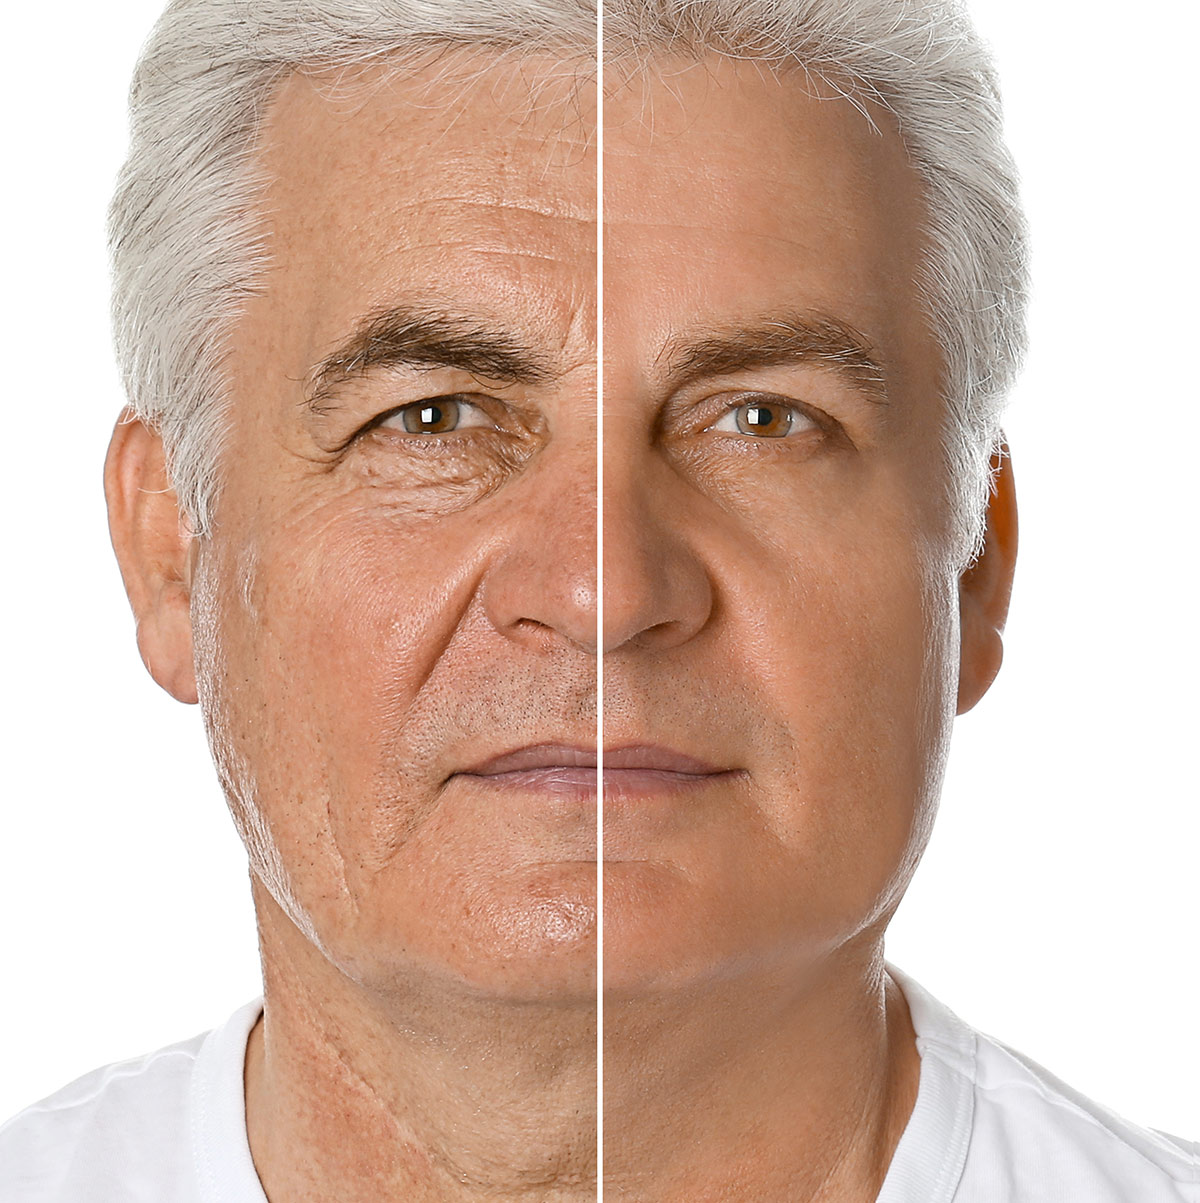 Male face, Before and After Lower Blepharoplasty Surgery, eyelids, front view